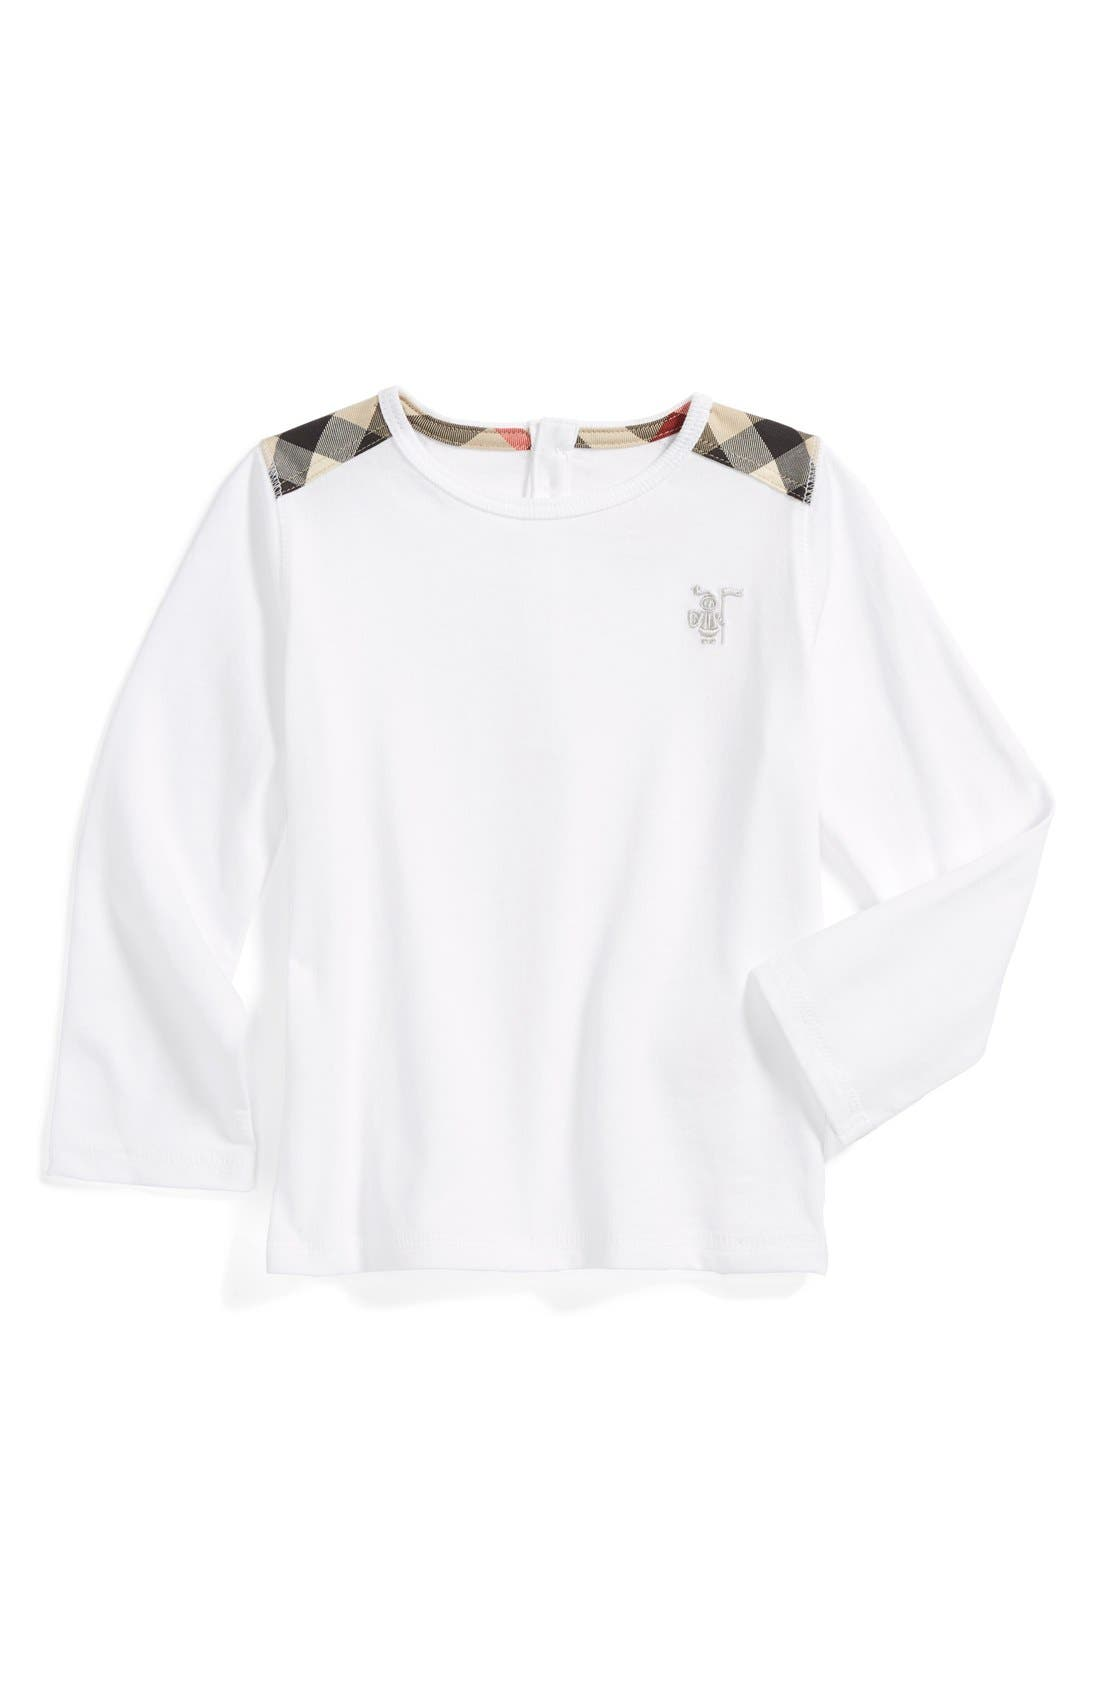 Alternate Image 1 Selected - Burberry Long Sleeve Tee (Baby Boys)